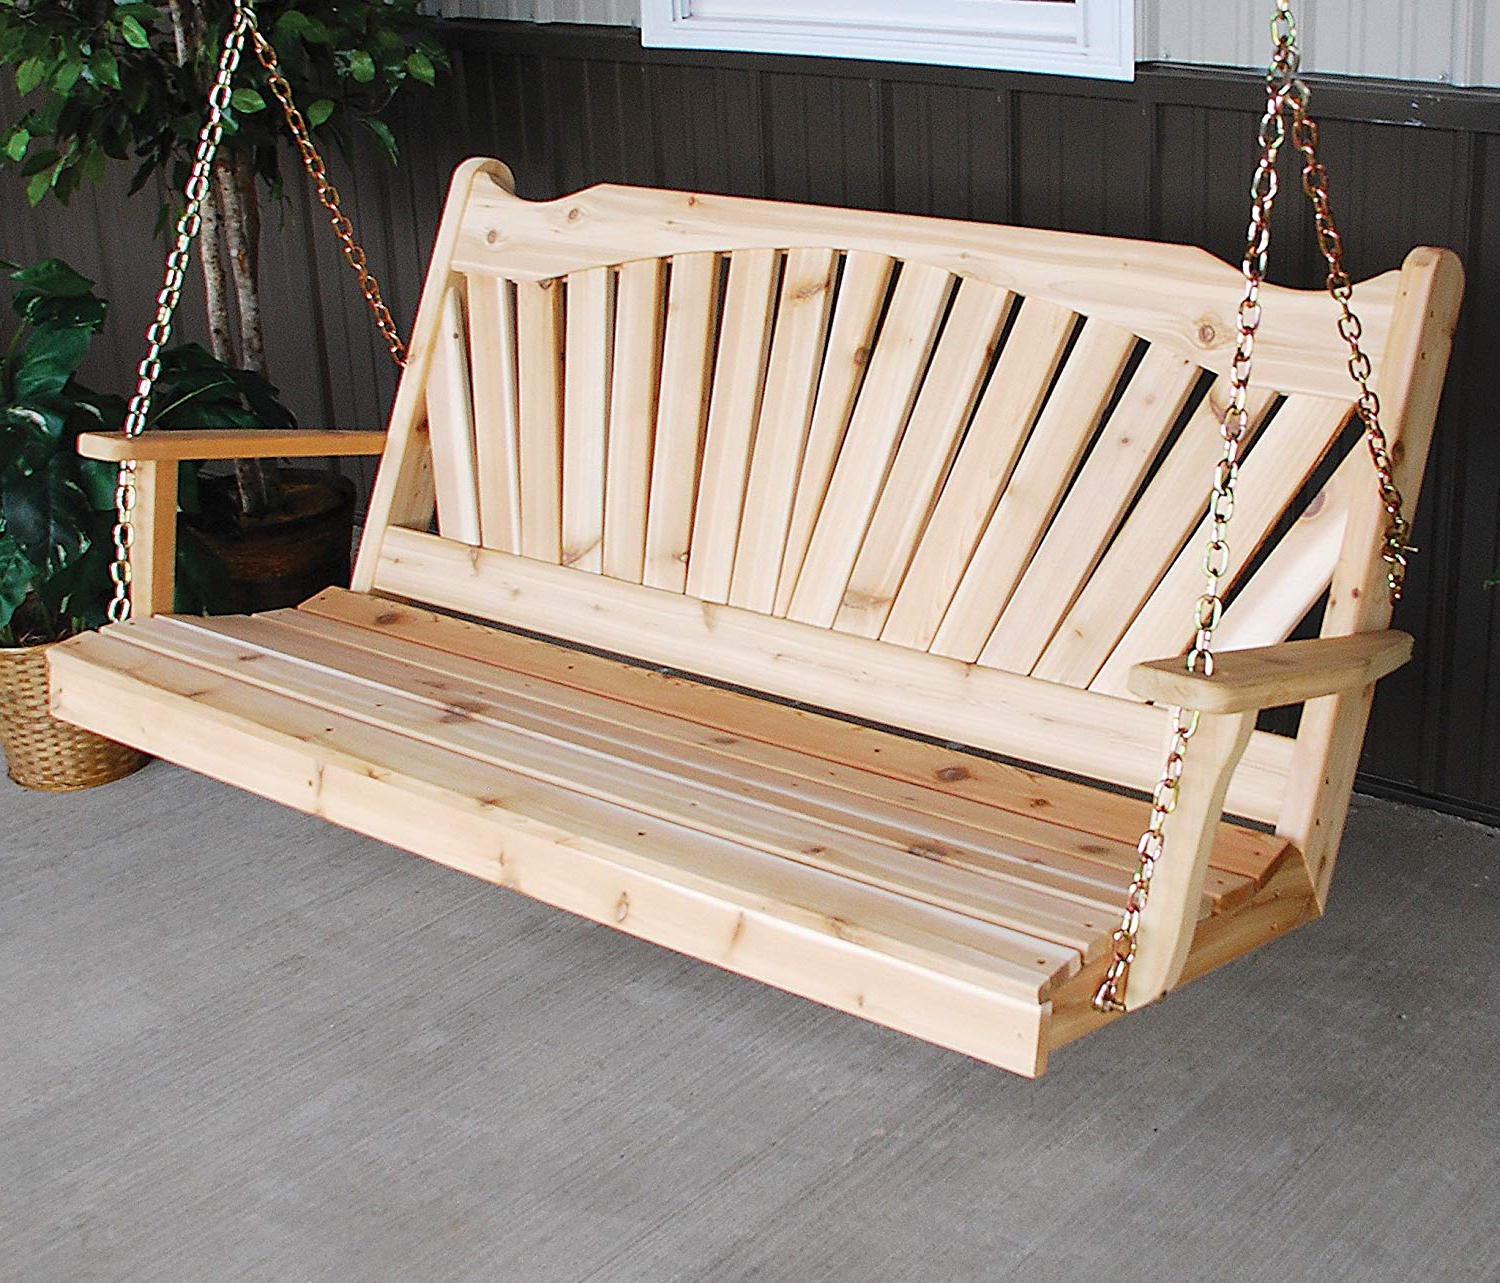 Latest Patio Hanging Porch Swings With Aspen Tree Interiors Cedar Porch Swing, Amish Outdoor Hanging Porch Swings, Patio Wooden 2 Person Seat Swinging Bench, Weather Resistant Western Red (View 5 of 30)